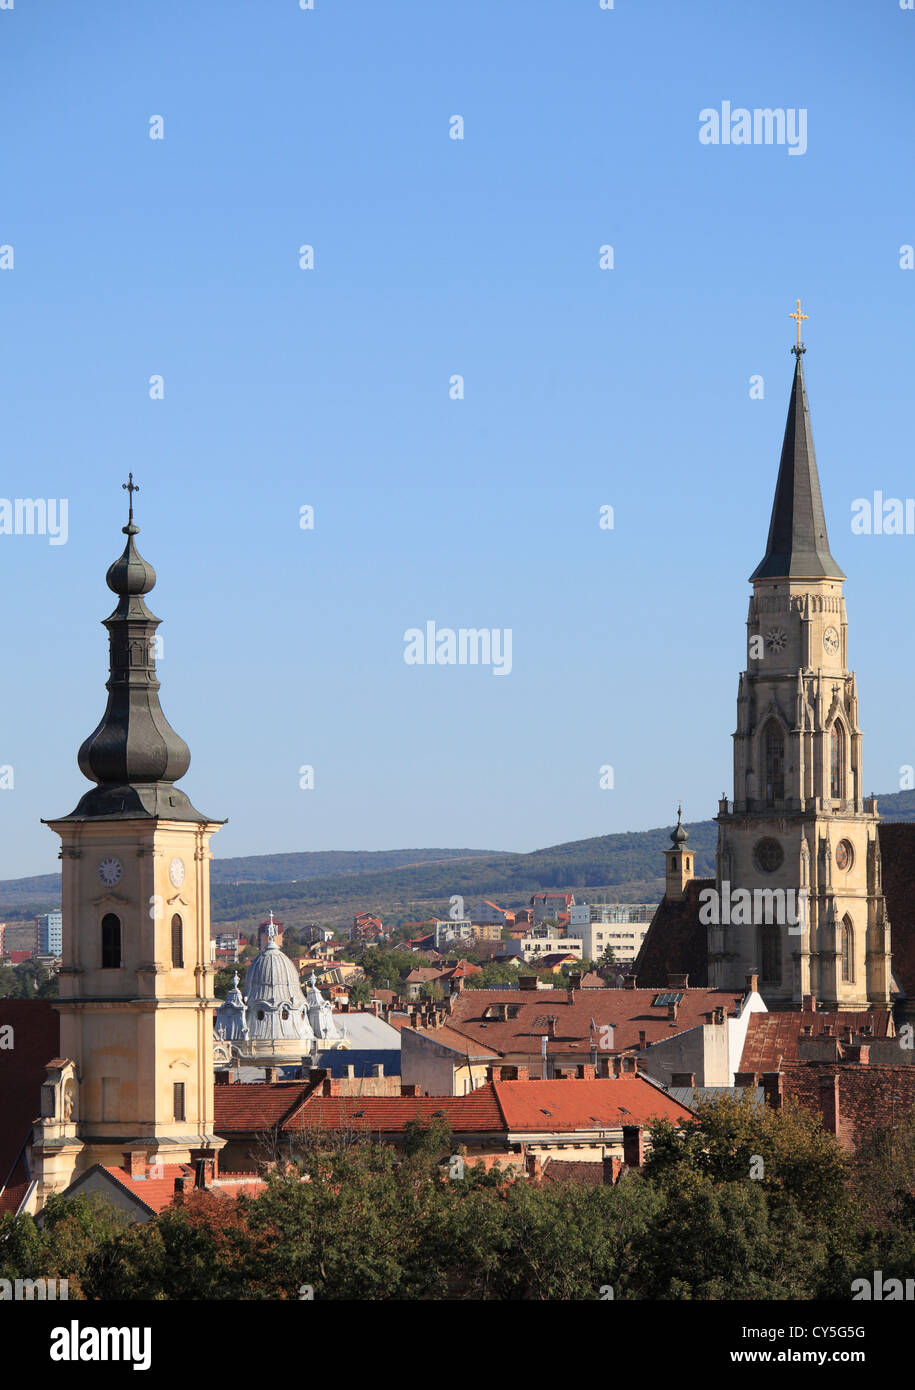 Romania, Cluj-Napoca, skyline, general view, - Stock Image